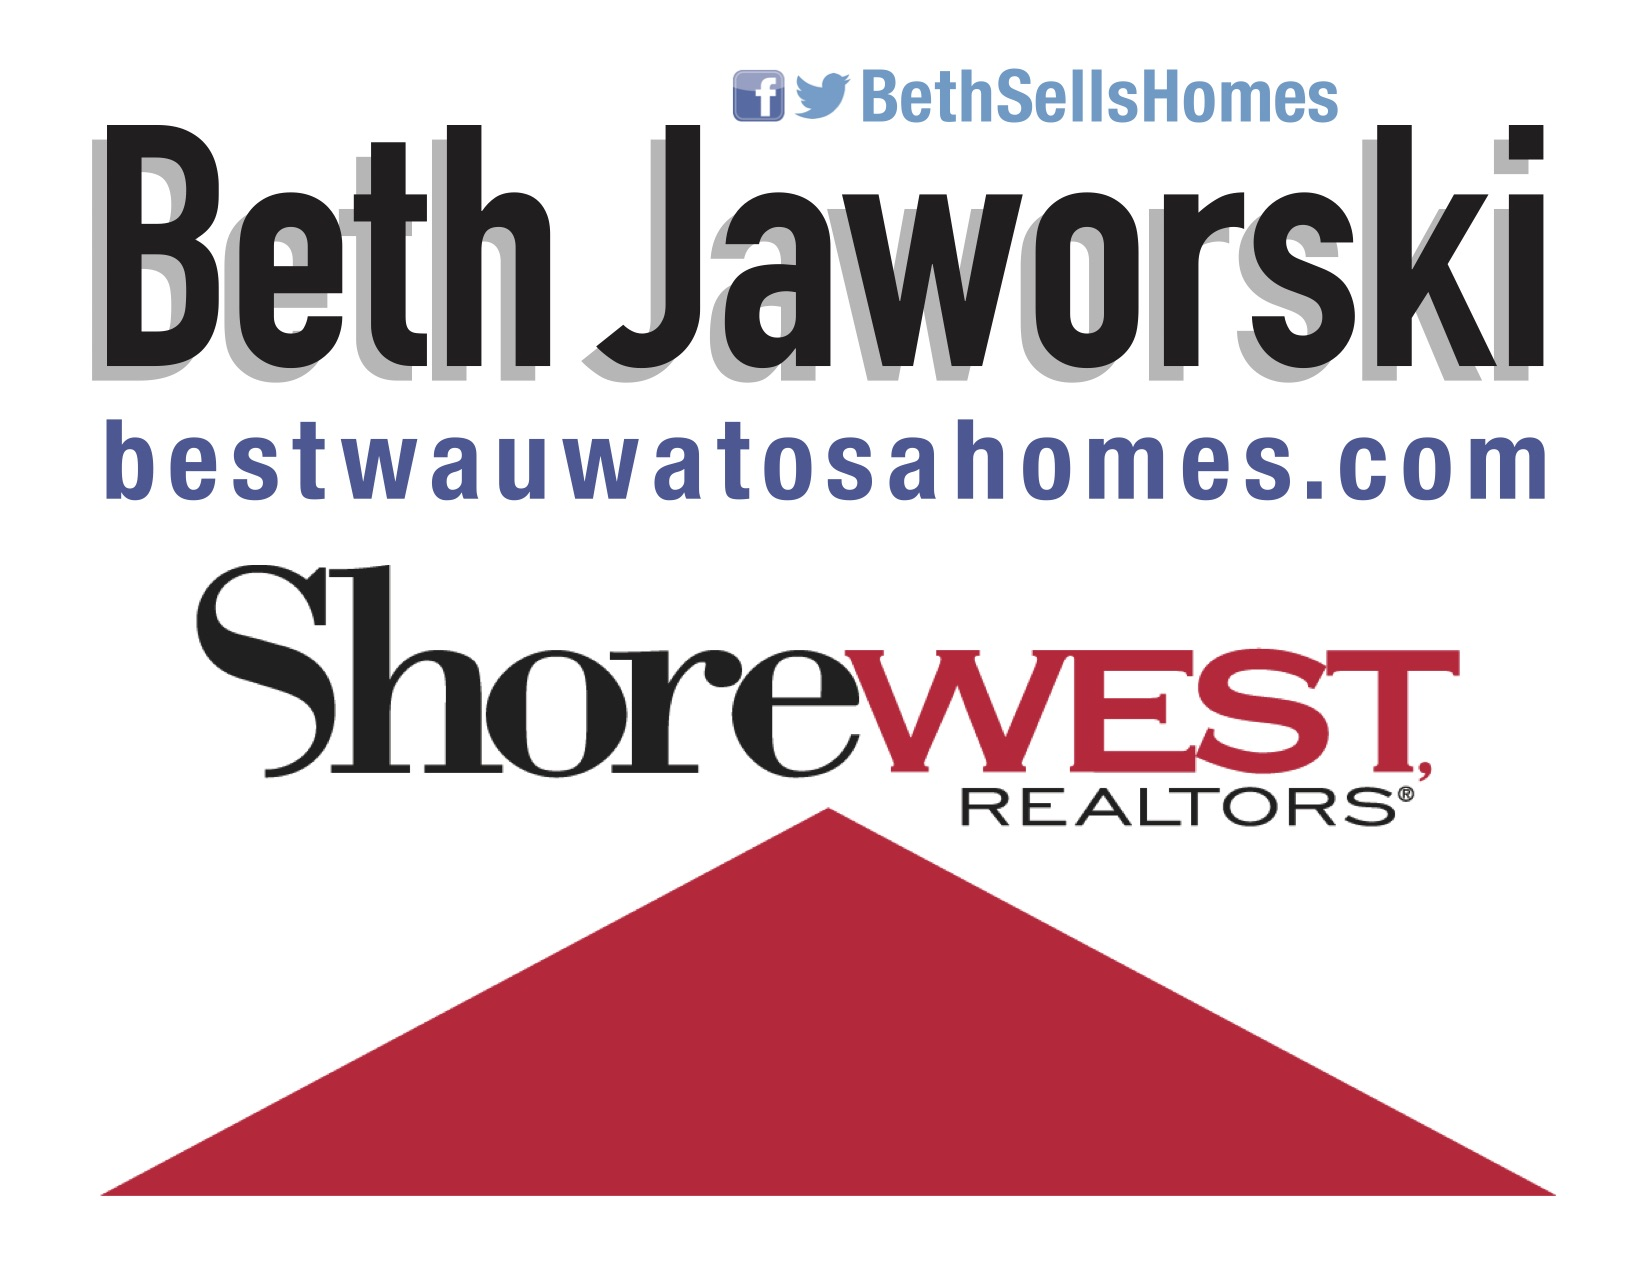 Beth Jaworski - shorewest